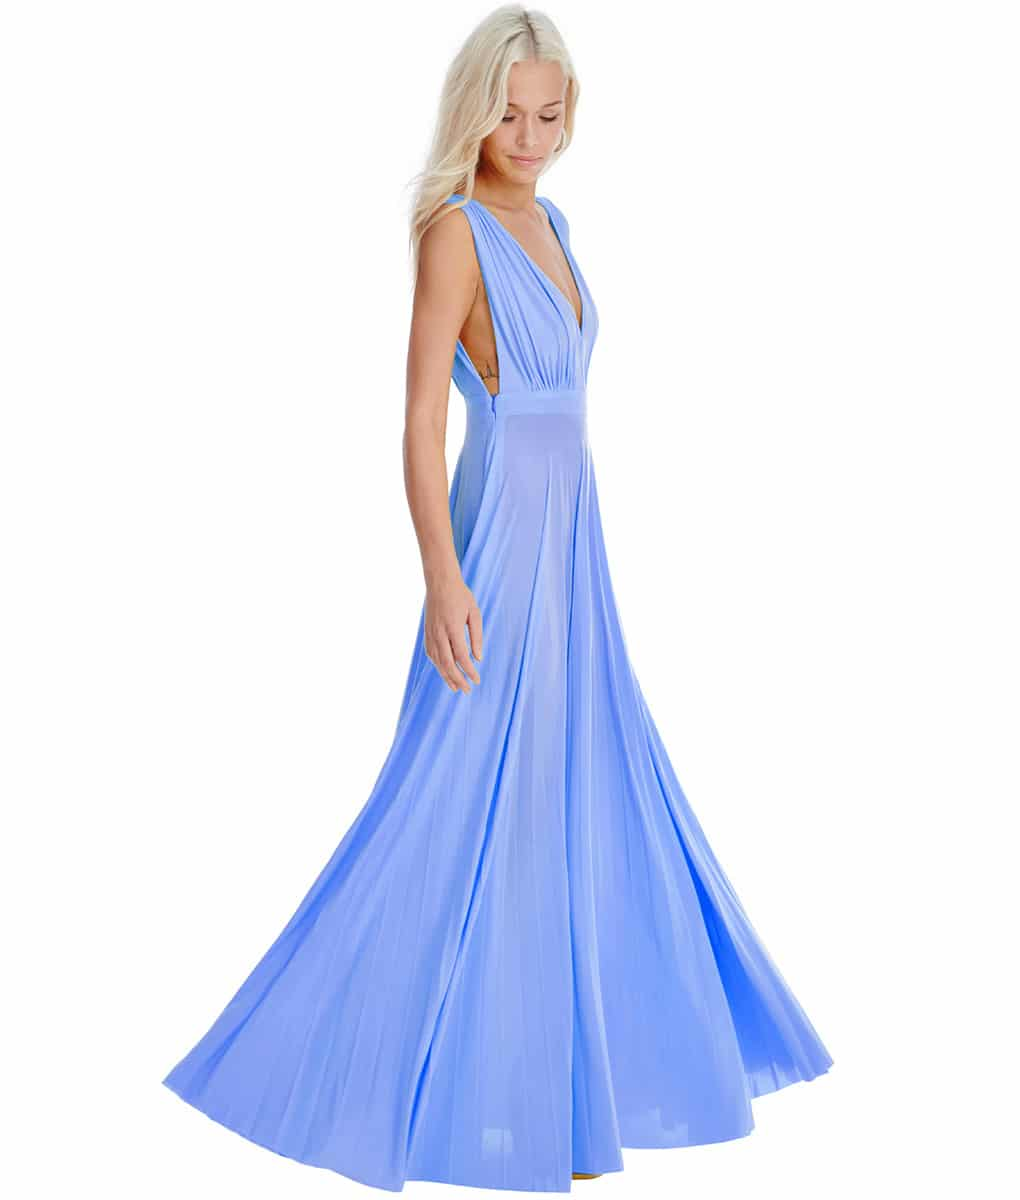 City Goddess - Pale Blue Plunge Gown - Alila